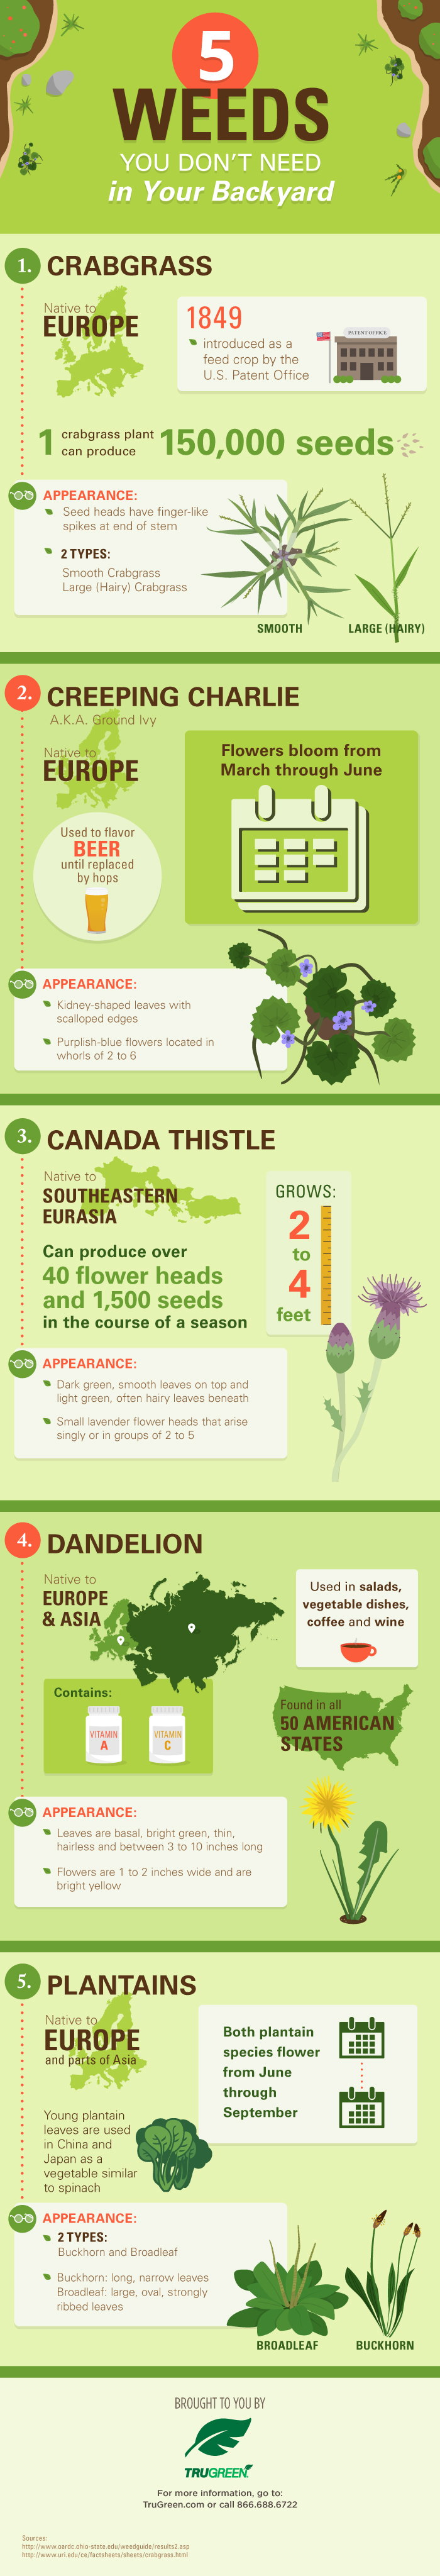 Weed control everything trugreen pinterest weed control and